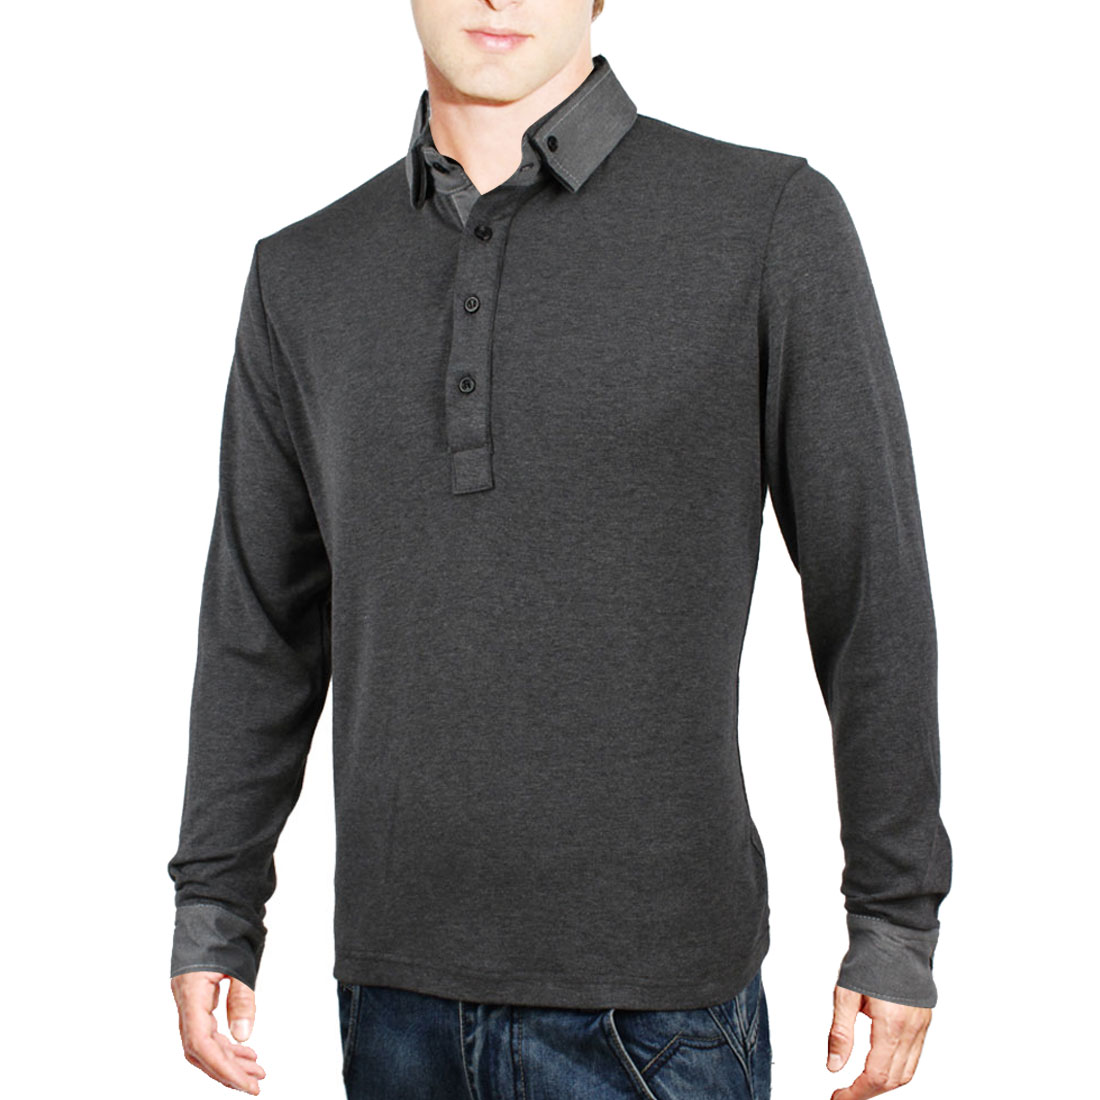 Mens Dark Gray Long Sleeves Buttoned Cuff Casual Polo Shirt M